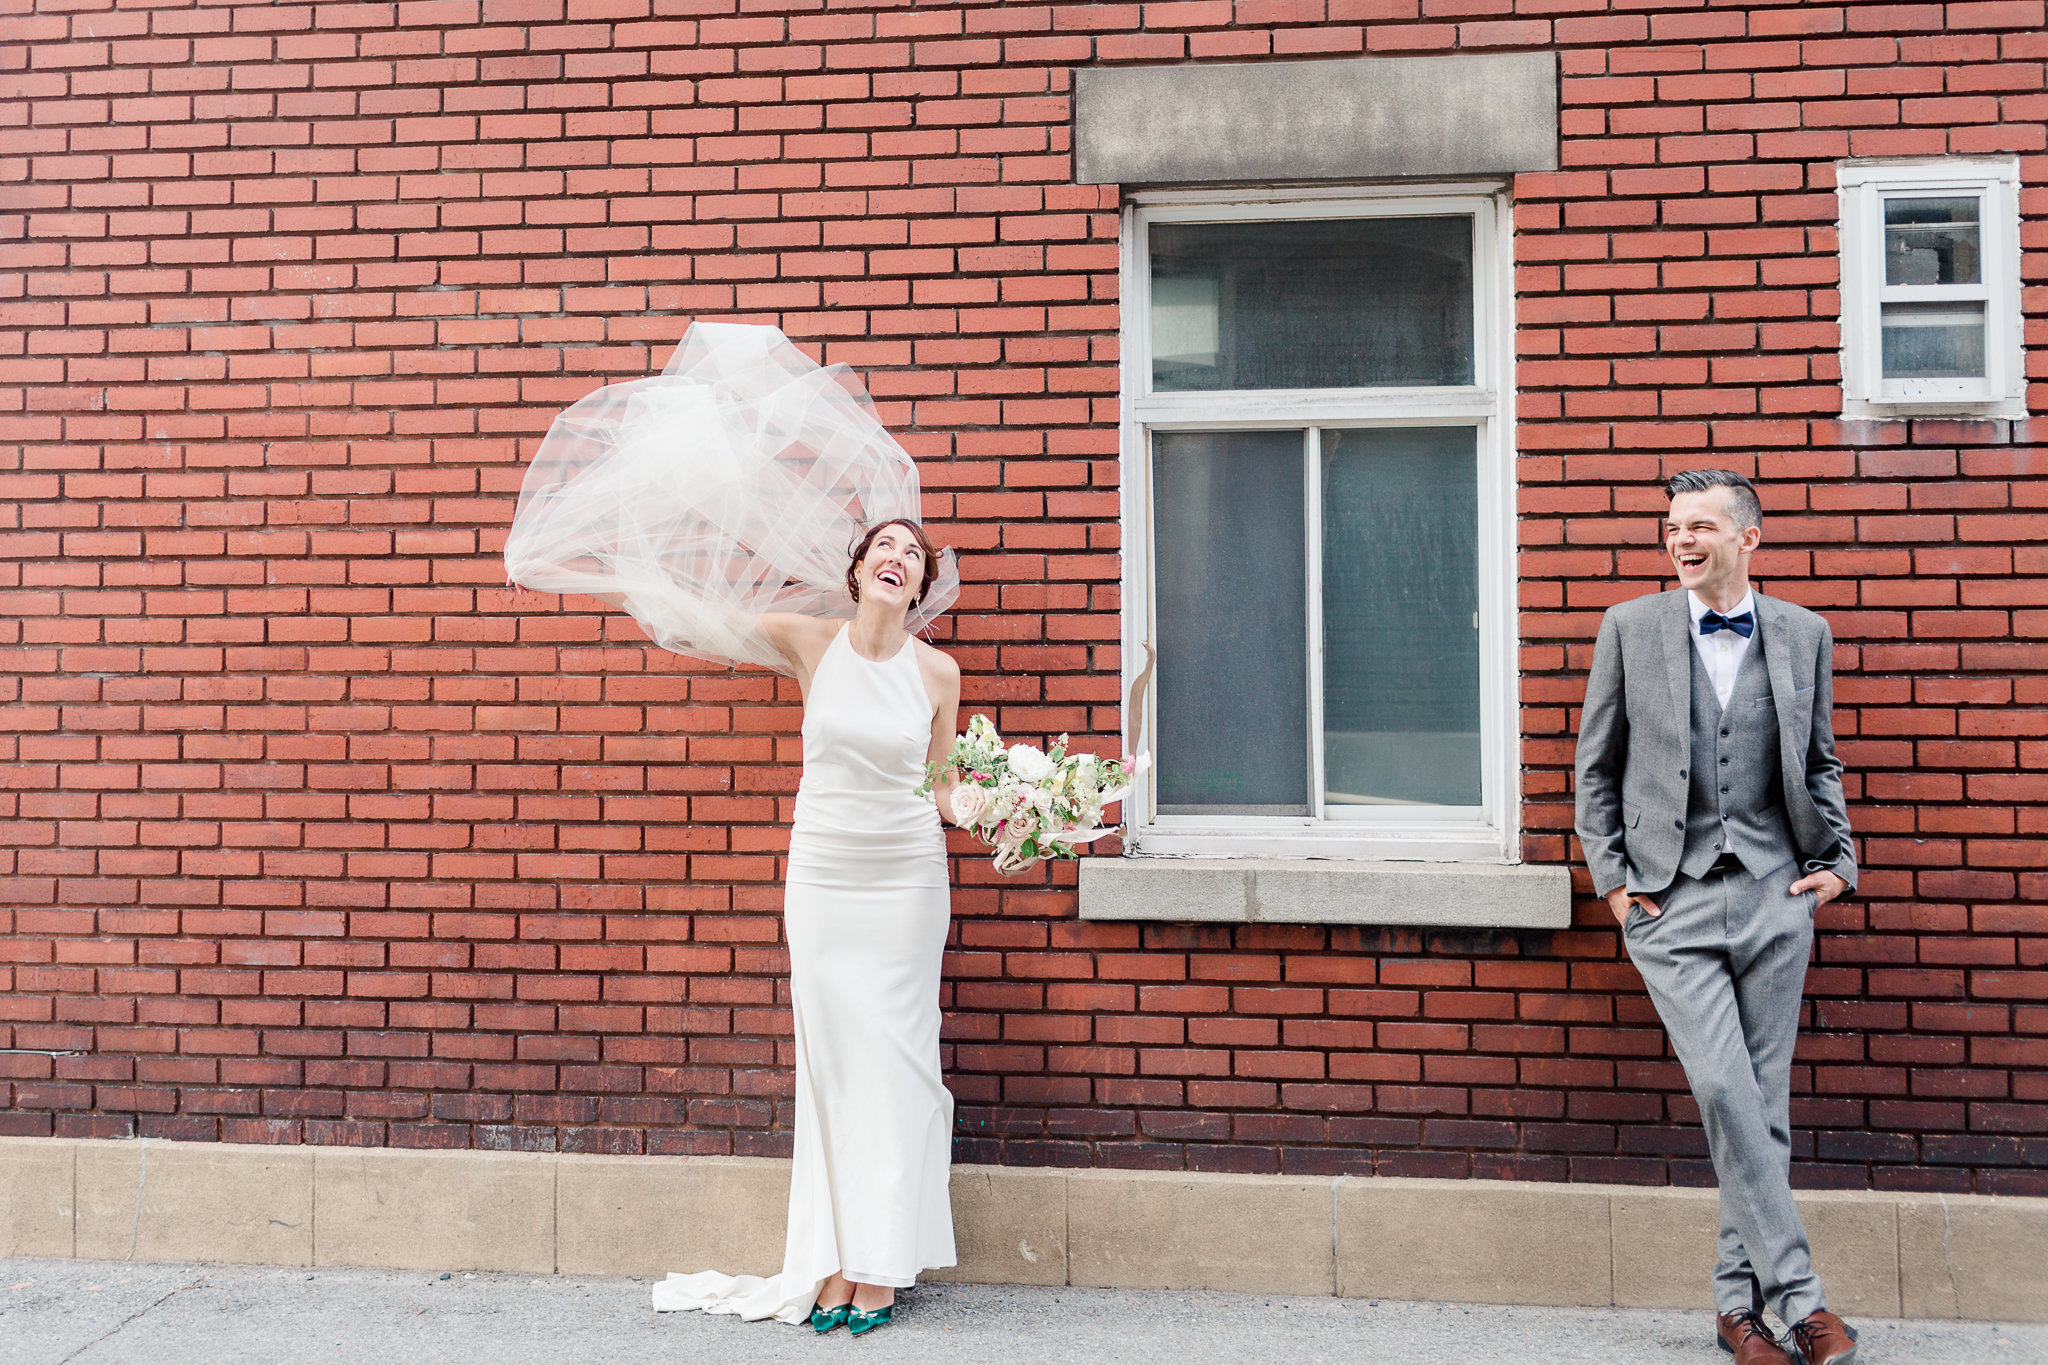 photographe-mariage-soupesoup-lisa-renault-photographie-montreal-wedding-photographer-76